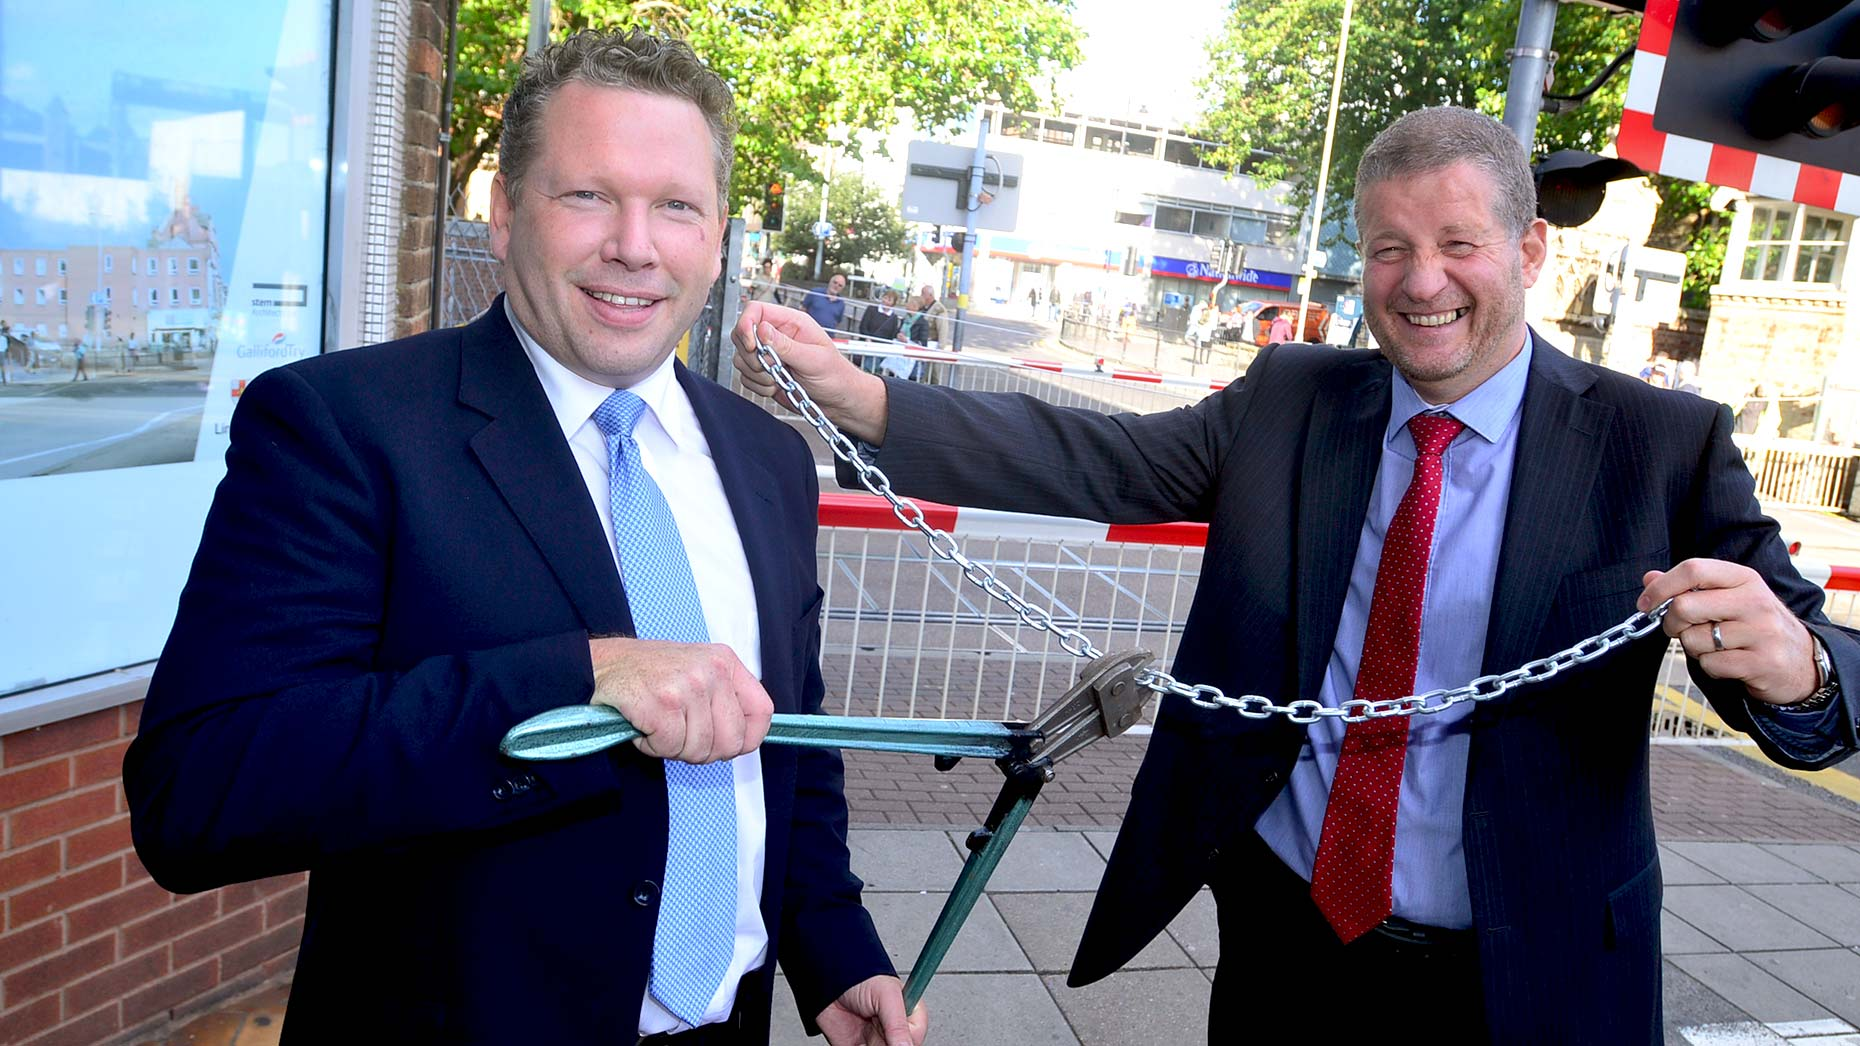 Lincoln MP Karl McCartney marked the start of the High Street footbridge work with Network Rail Managing Director Phil Verster. Photo: Steve Smailes for The Lincolnite